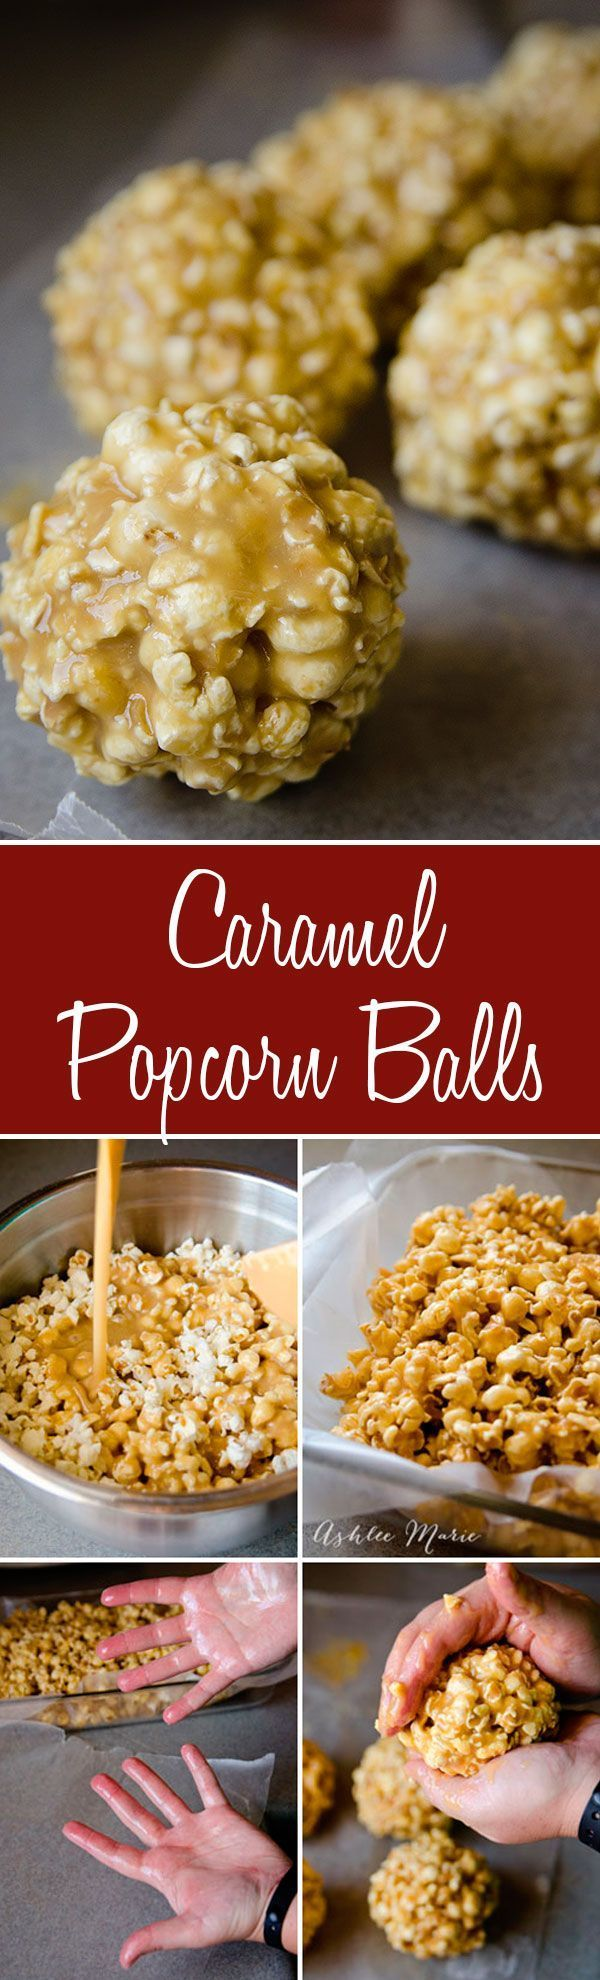 Caramel Popcorn Balls- easy to make, has a great buttery flavor and tastes divine. Give some away as a gift, full video tutorial to help